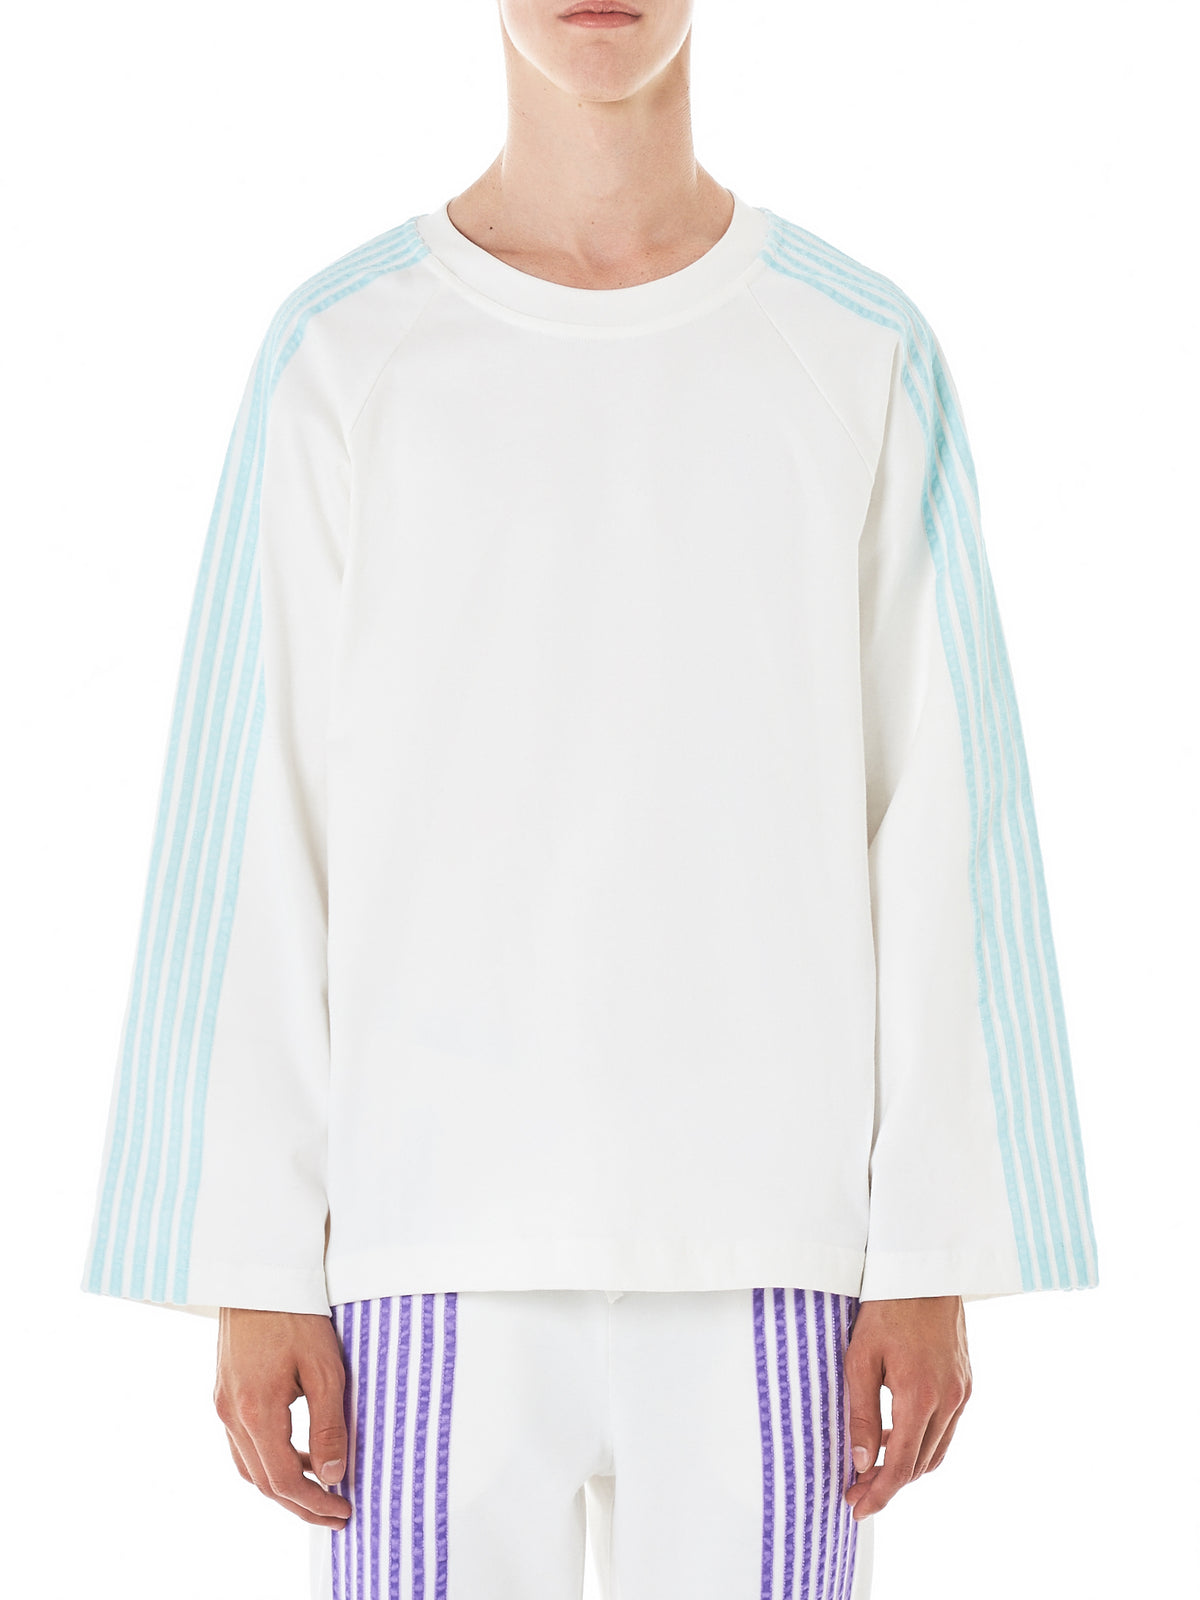 Striped Long-Sleeve Raglan Tee (TS137A5-WHT-TURQ-STRIPES)